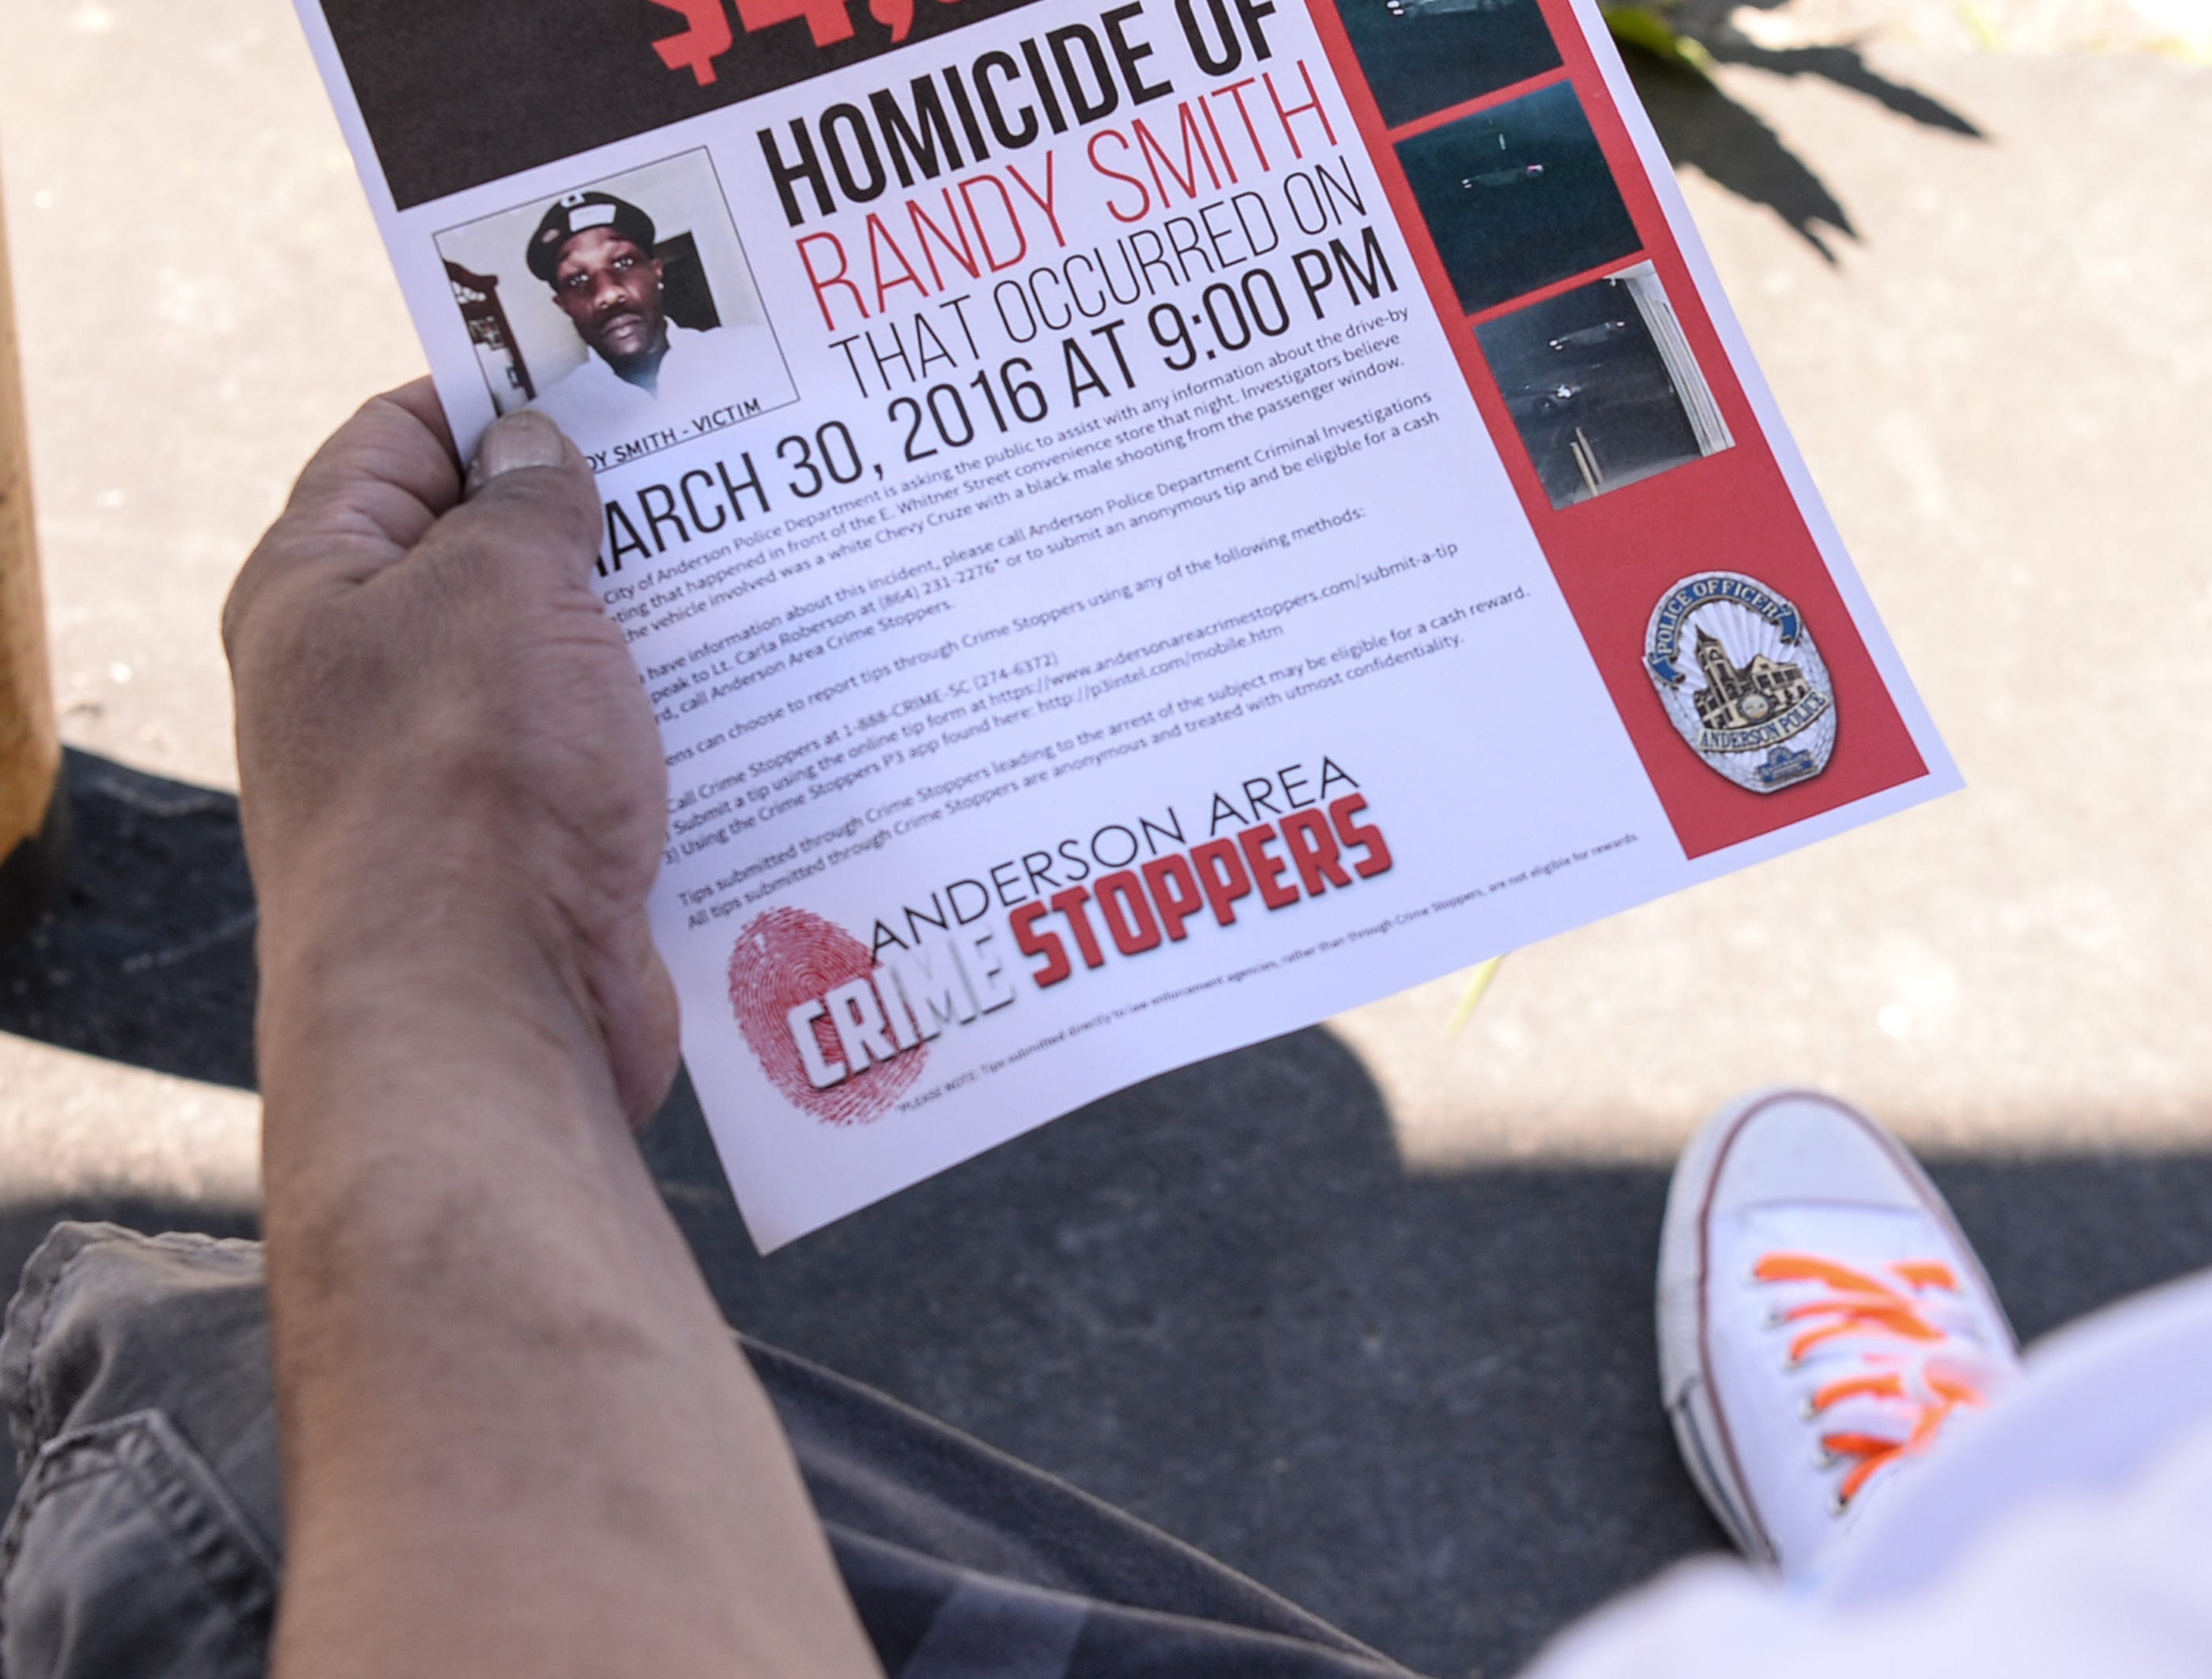 James Smith, father of Randy Smith, looks at a Crime Stopper flyer after a press conference asking the public for tips in the cold case homicide case of Randy Smith, who was shot in a drive-by shooting in March 2016.